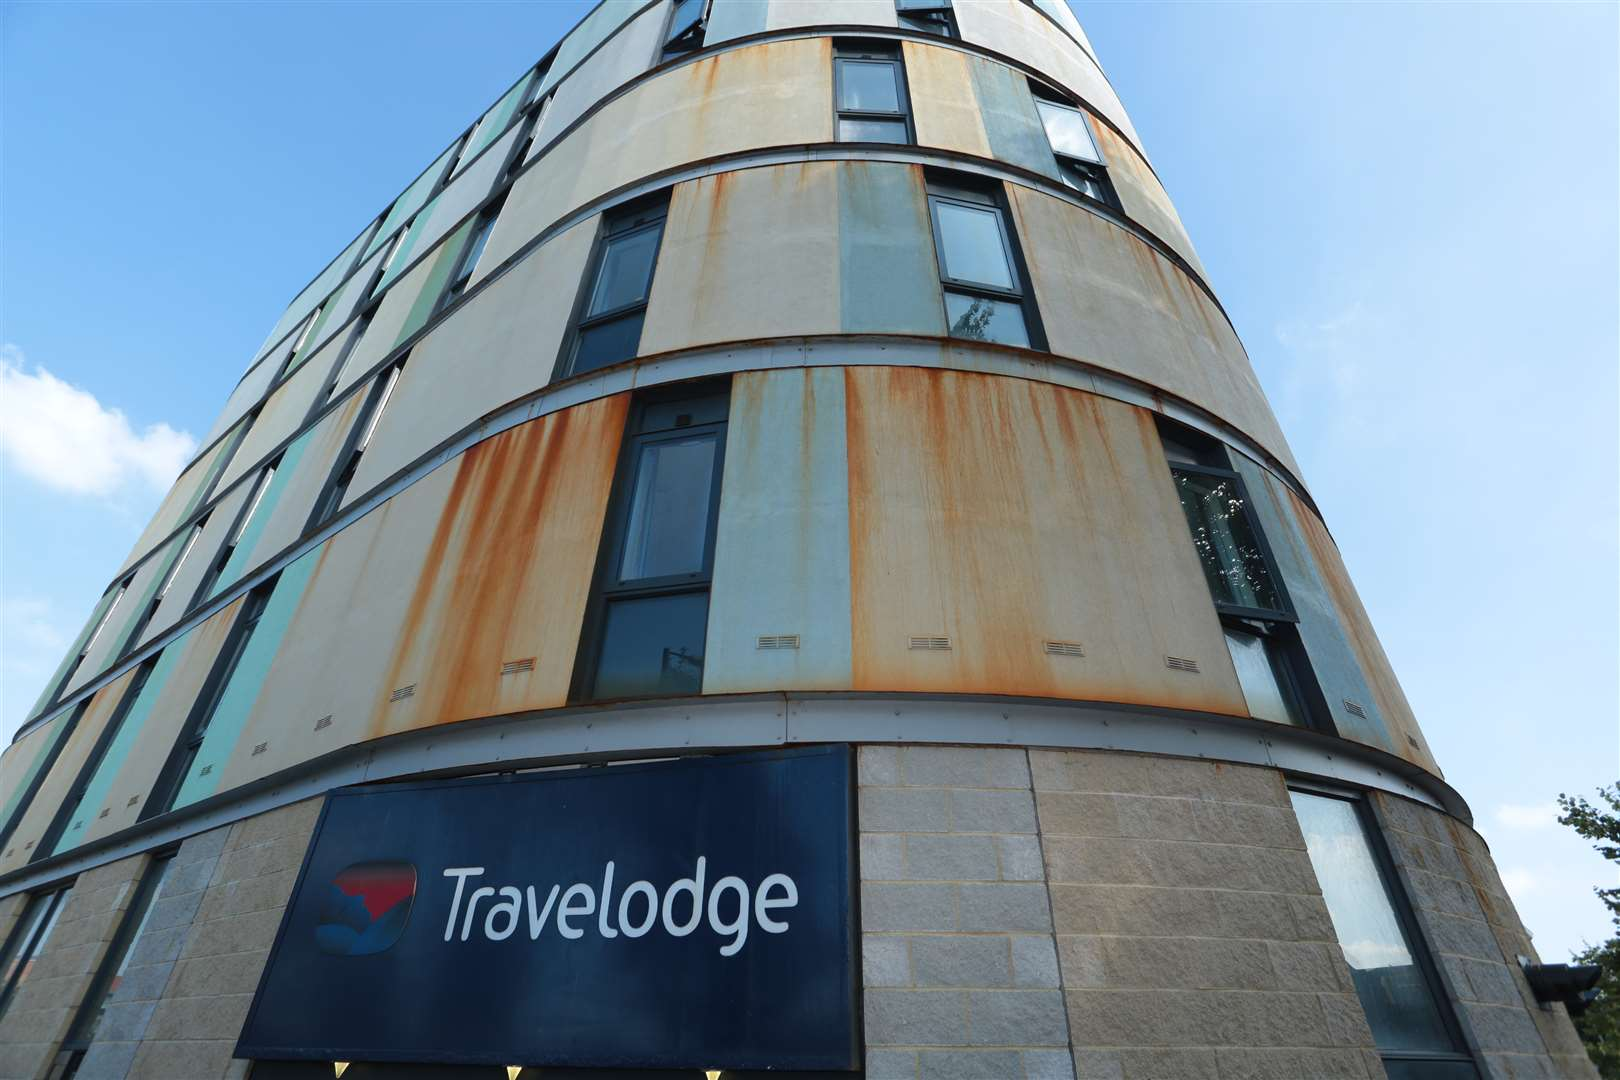 The Travelodge in Maidstone and its offending rust stains